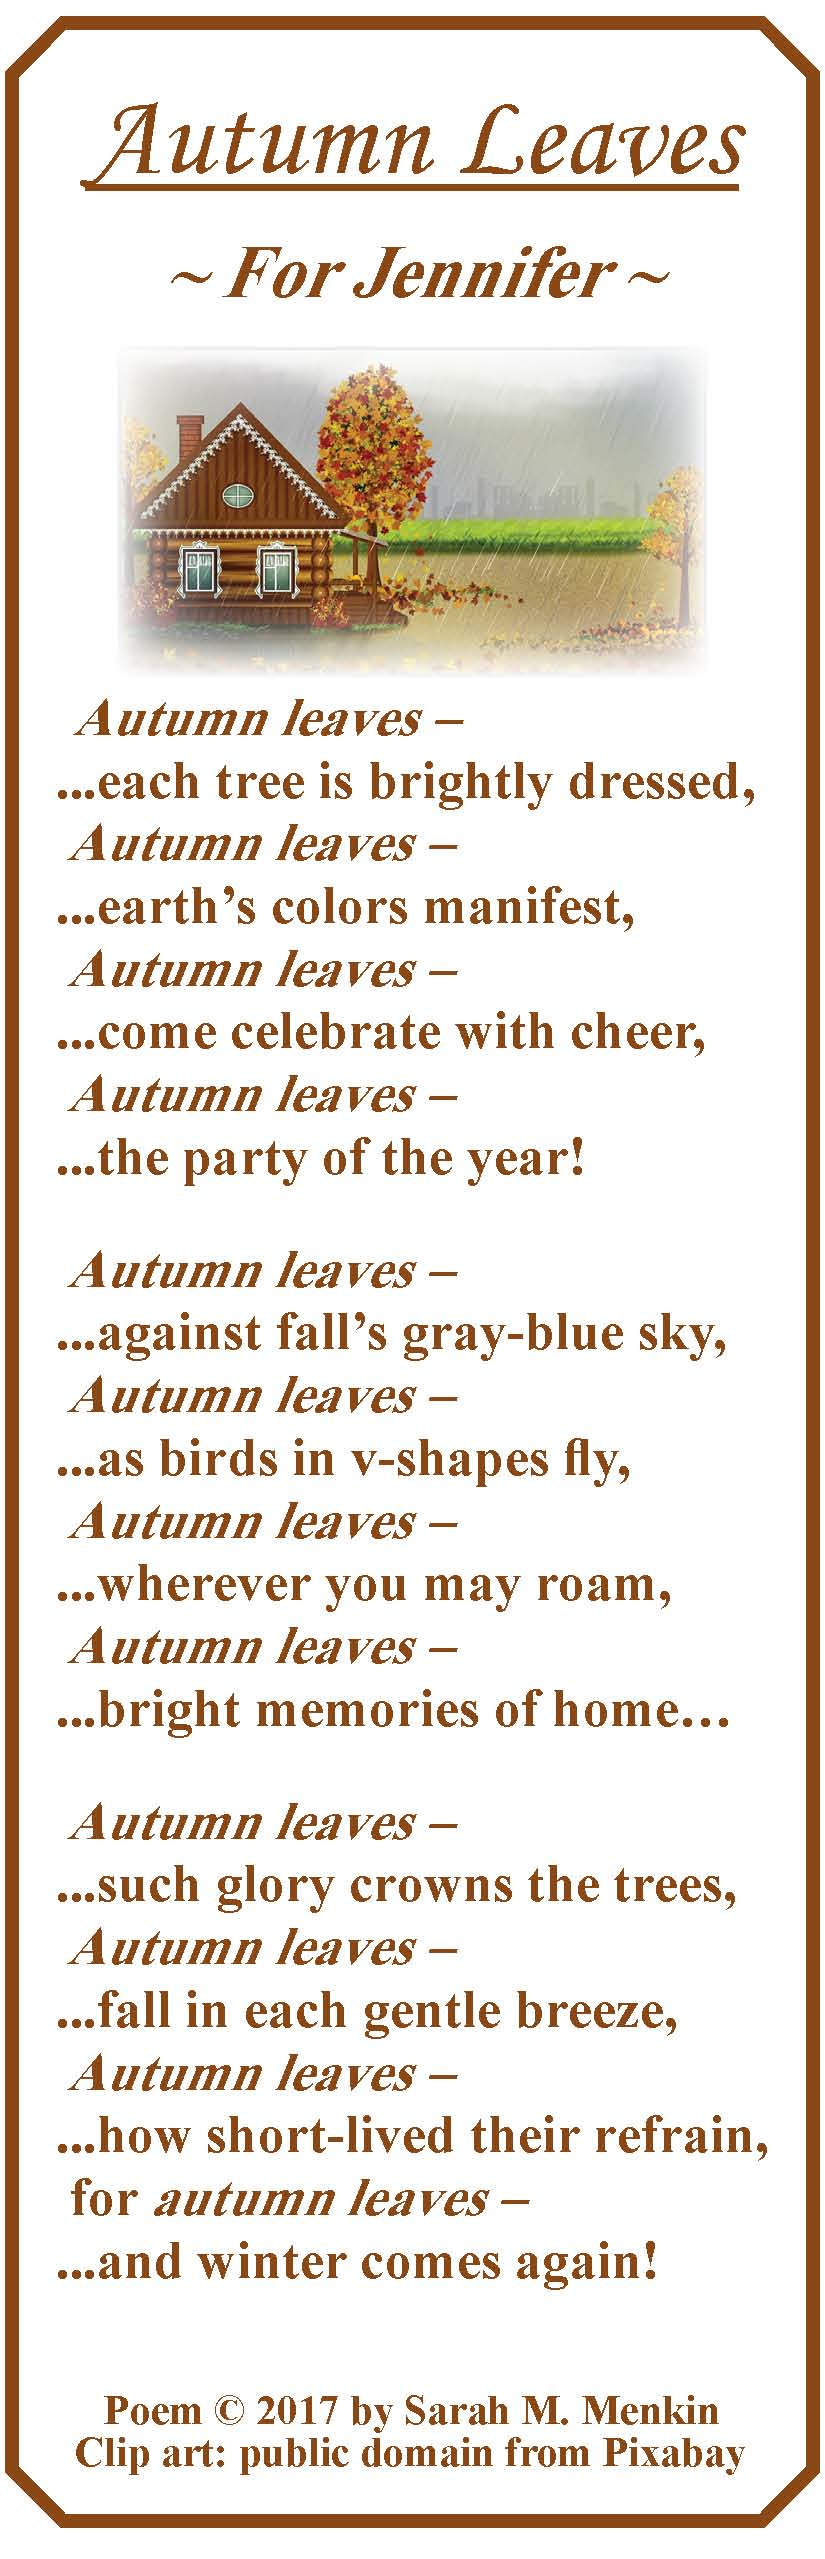 Autumn Leaves 3: SMM